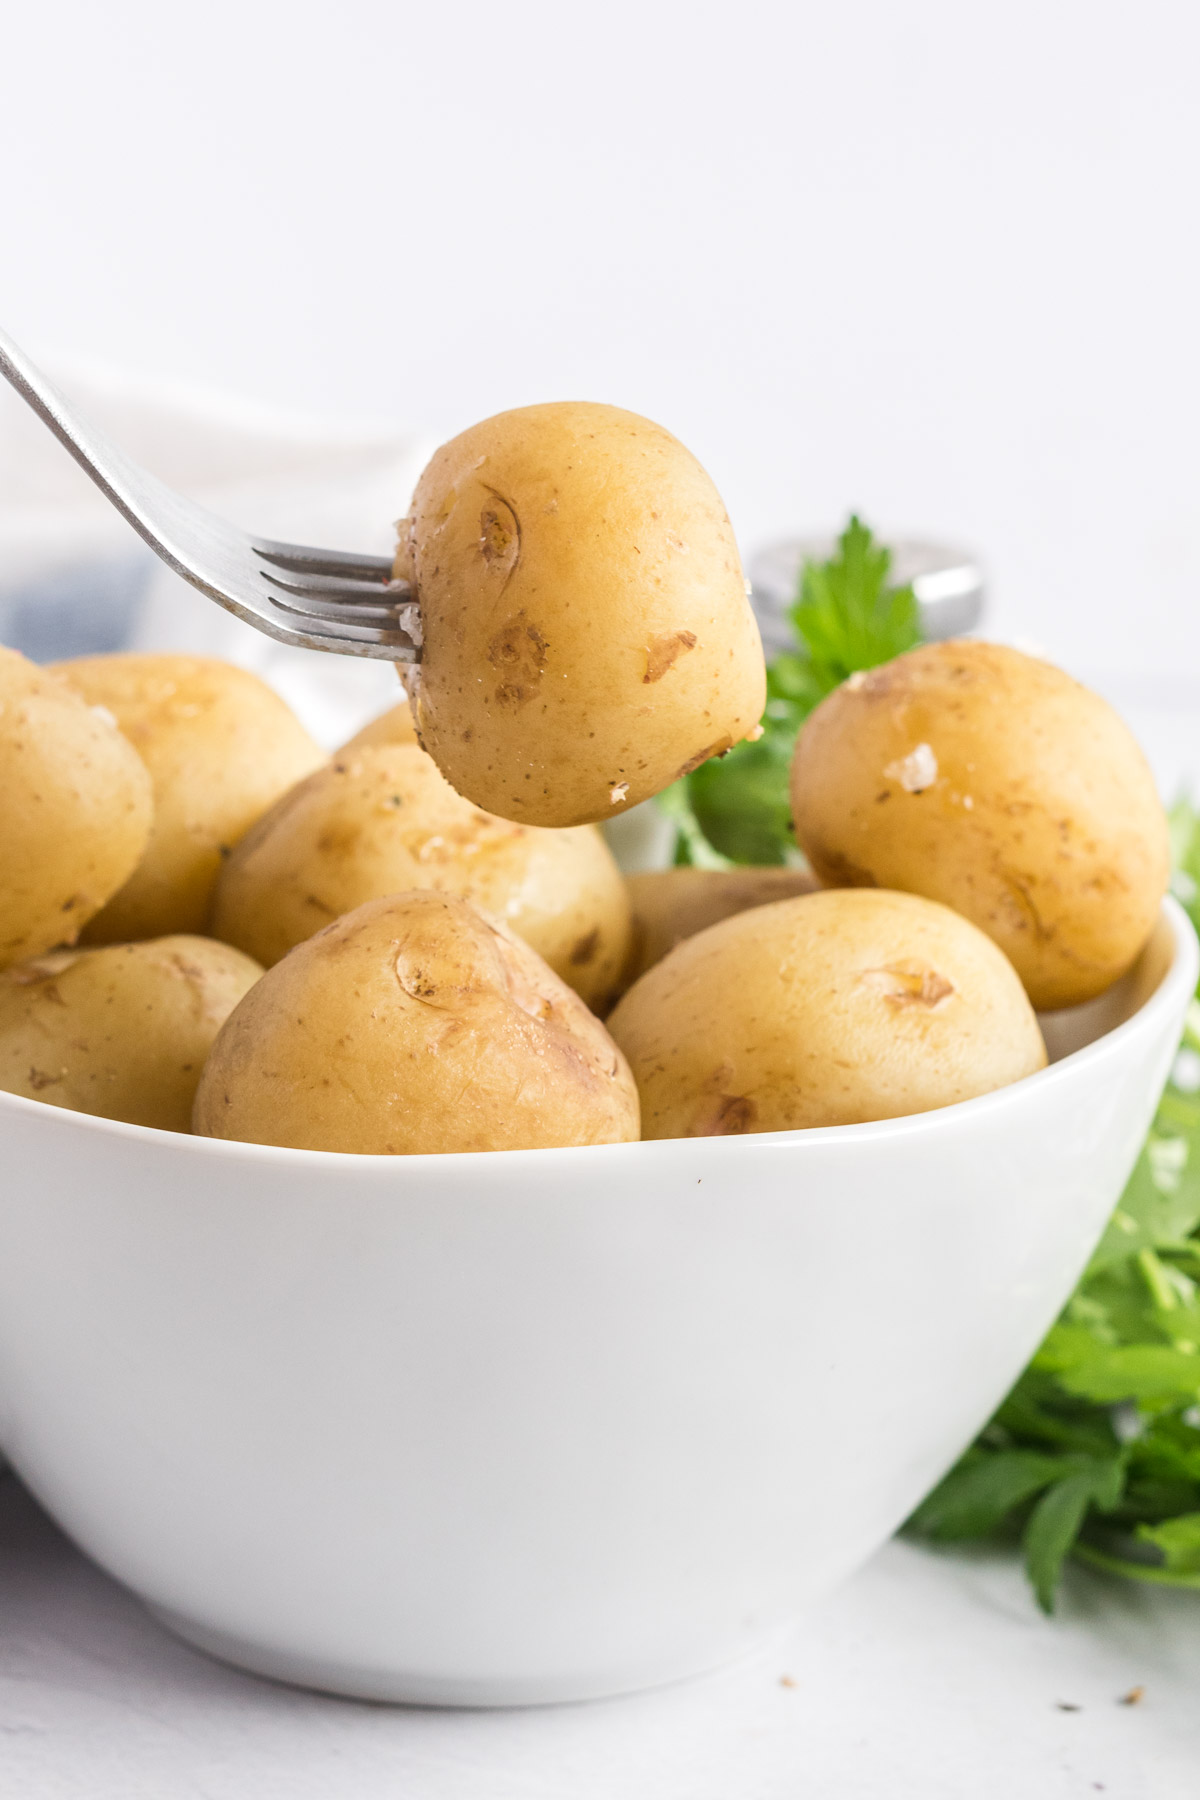 A baby potato on the end of a fork being lifted from a bowl of potatoes.